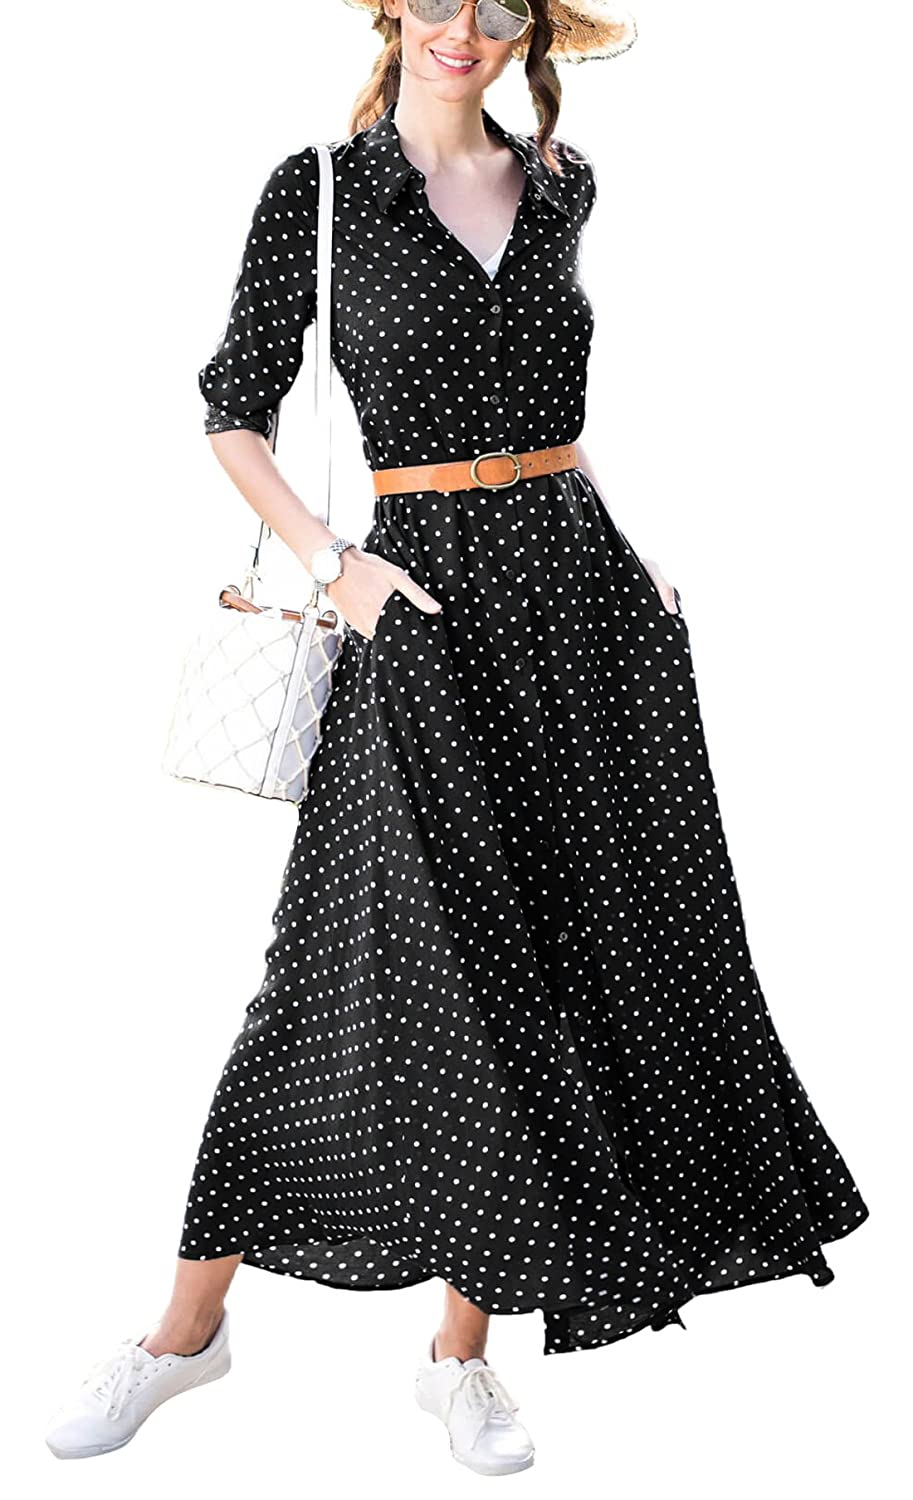 3a5ee7539d091 Button Down Collar,Roll Up Long Sleeve,Vintage Polka Dot Print A Line  Buttons Up Flowy Maxi Long Dresses with Pockets Suitable for dating,casual  everyday ...